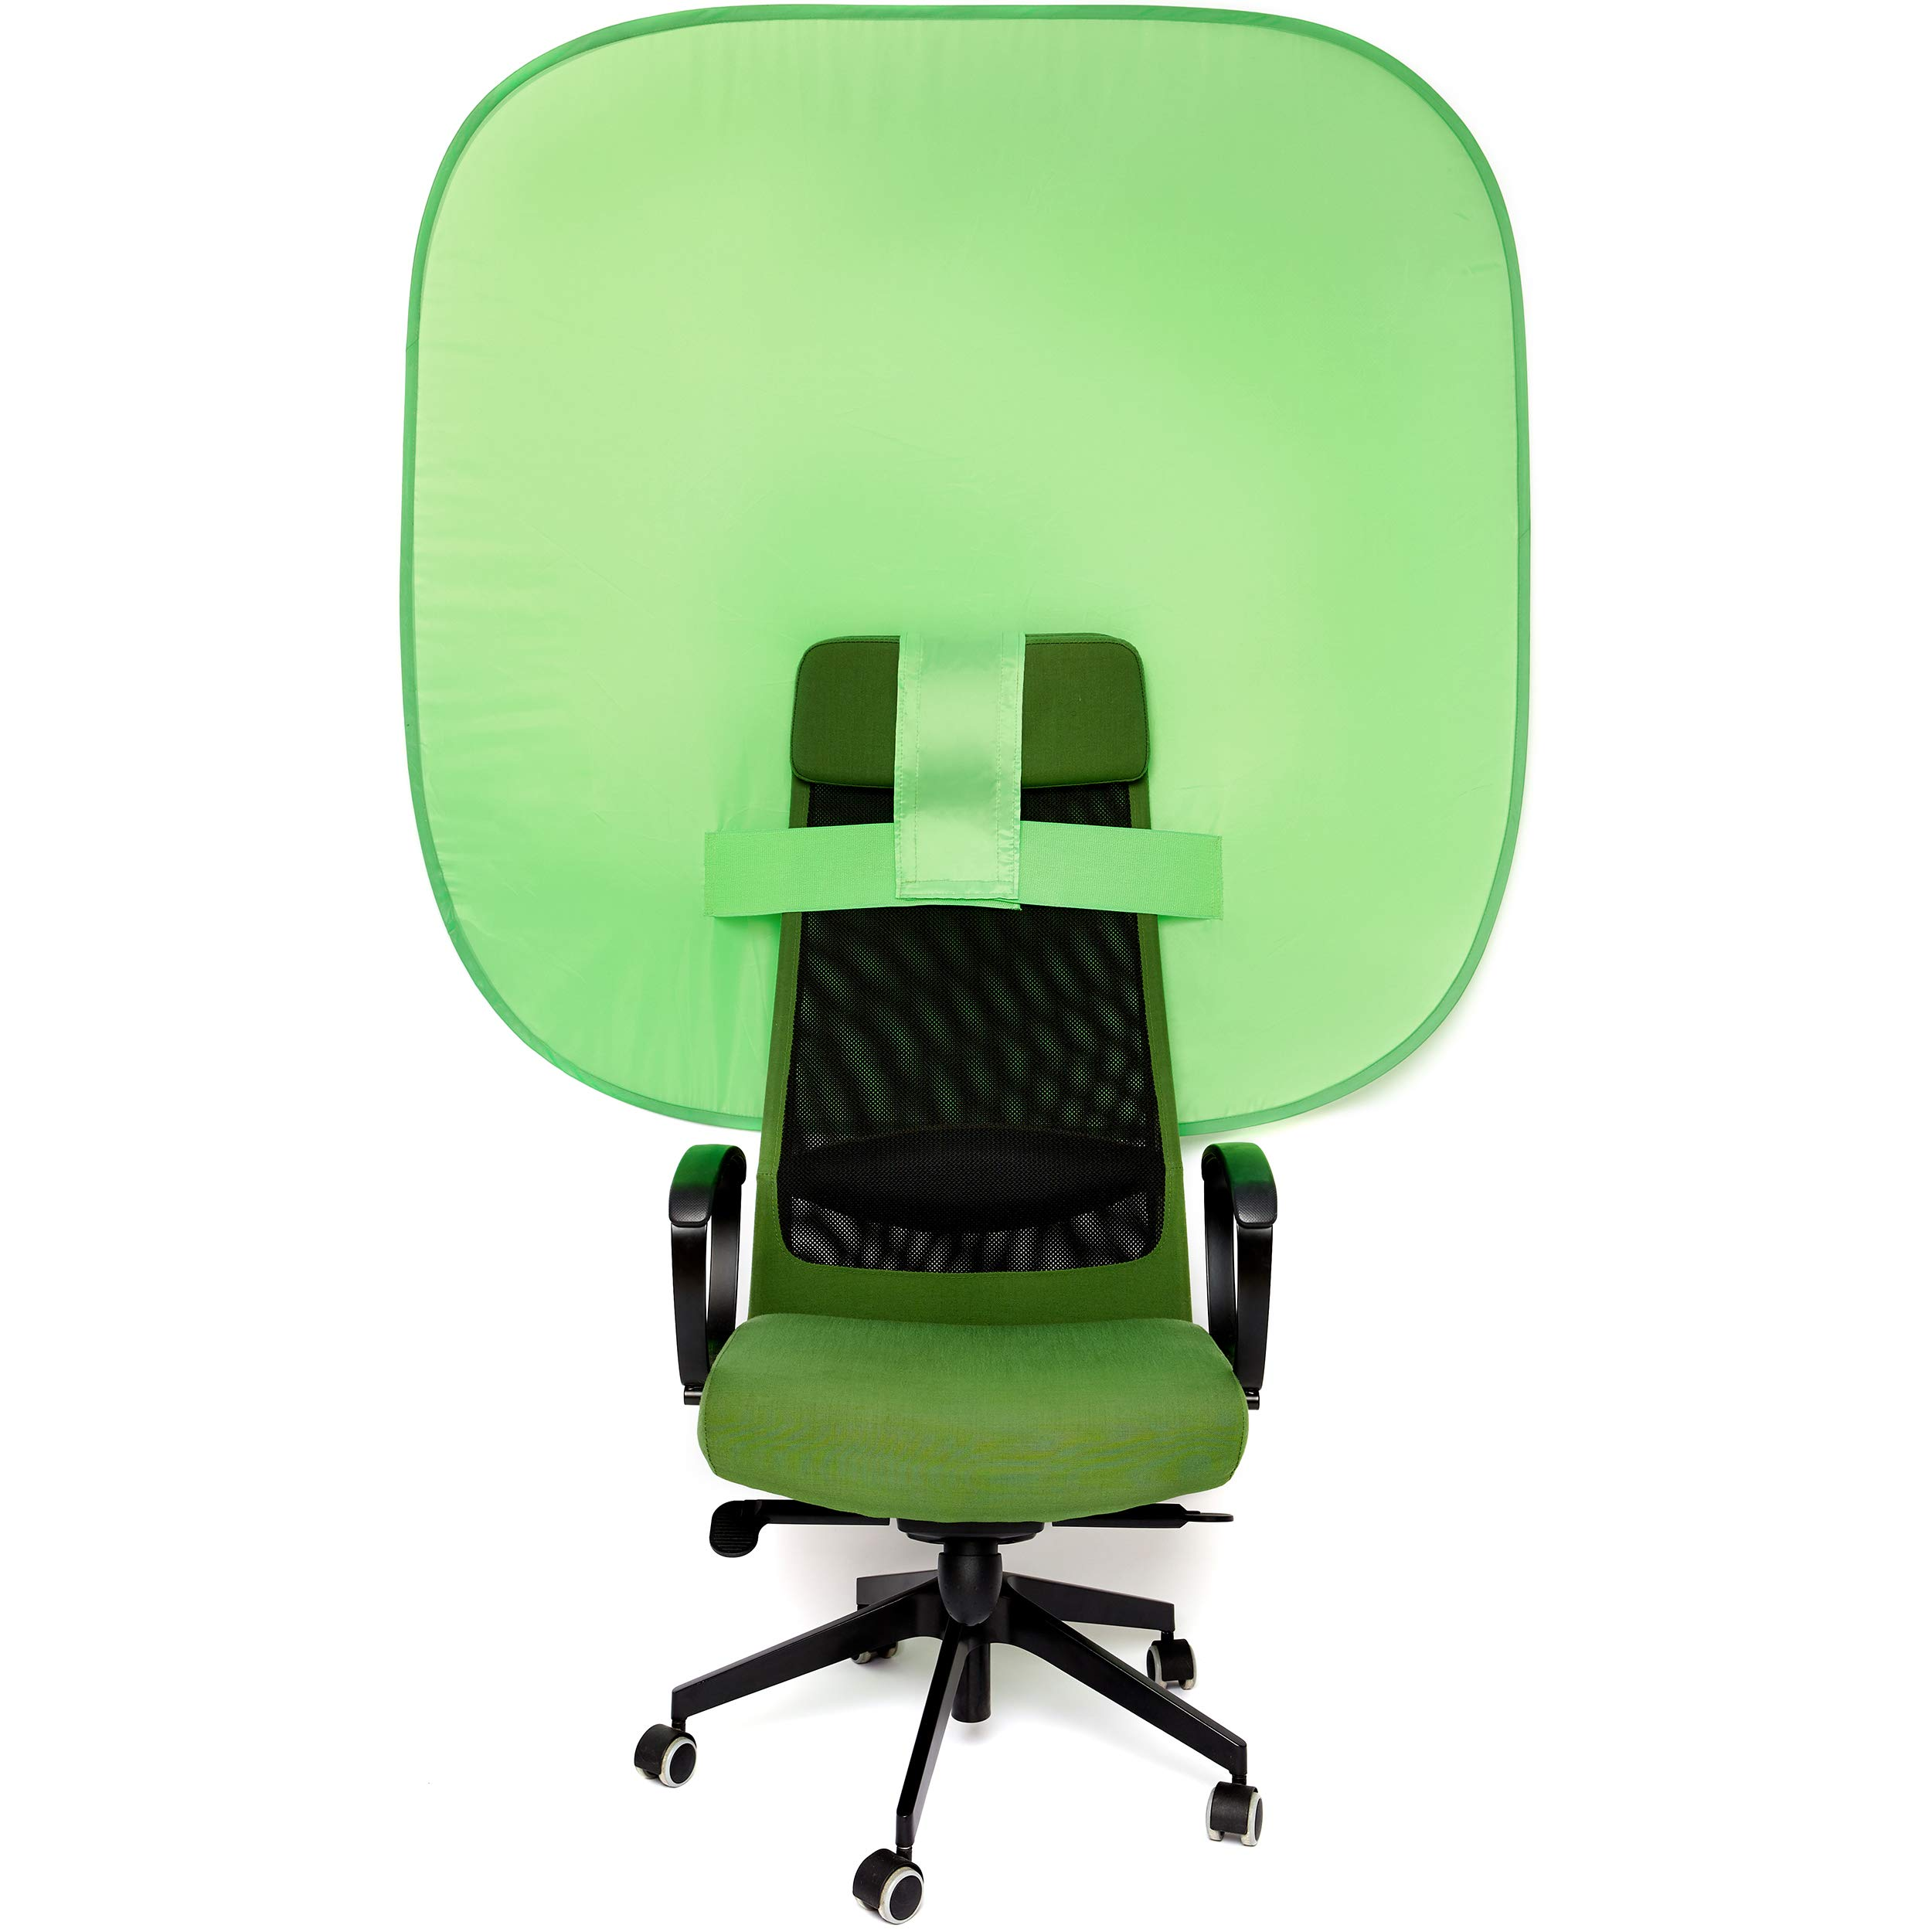 Portable Chair Green Screen - Collapsible Greenscreen Background for Webcam Video Streaming Gaming - 62'' Pop Up Chroma Key Backdrop Kit by Kenley